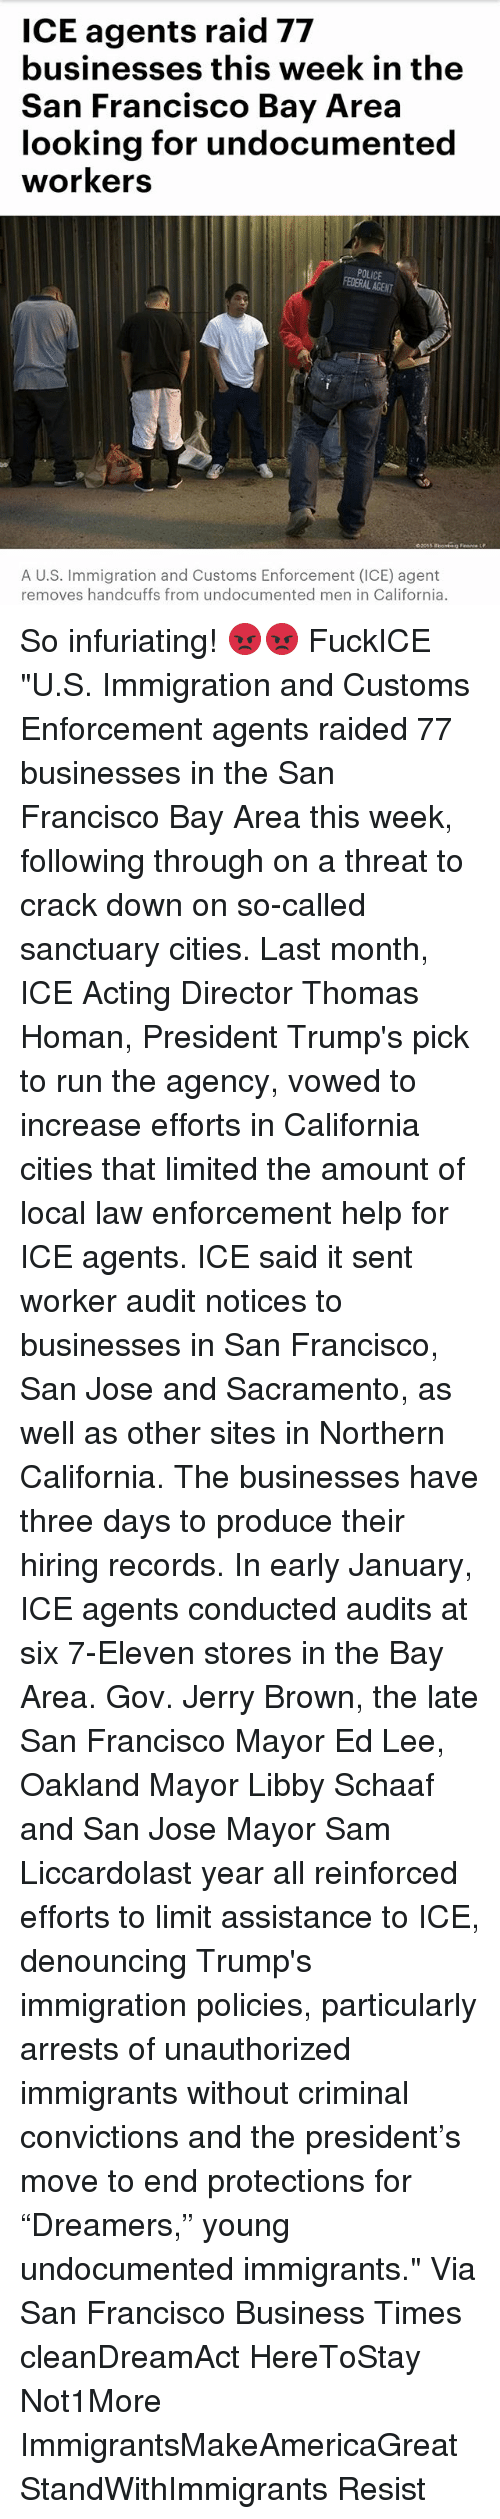 "7-Eleven, Memes, and Police: ICE agents raid 77  businesses this week in the  San Francisco Bay Area  looking for undocumented  workers  POLICE  FEDERAL ACENT  A U.S. Immigration and Customs Enforcement (ICE) agent  removes handcuffs from undocumented men in California. So infuriating! 😡😡 FuckICE ""U.S. Immigration and Customs Enforcement agents raided 77 businesses in the San Francisco Bay Area this week, following through on a threat to crack down on so-called sanctuary cities. Last month, ICE Acting Director Thomas Homan, President Trump's pick to run the agency, vowed to increase efforts in California cities that limited the amount of local law enforcement help for ICE agents. ICE said it sent worker audit notices to businesses in San Francisco, San Jose and Sacramento, as well as other sites in Northern California. The businesses have three days to produce their hiring records. In early January, ICE agents conducted audits at six 7-Eleven stores in the Bay Area. Gov. Jerry Brown, the late San Francisco Mayor Ed Lee, Oakland Mayor Libby Schaaf and San Jose Mayor Sam Liccardolast year all reinforced efforts to limit assistance to ICE, denouncing Trump's immigration policies, particularly arrests of unauthorized immigrants without criminal convictions and the president's move to end protections for ""Dreamers,"" young undocumented immigrants."" Via San Francisco Business Times cleanDreamAct HereToStay Not1More ImmigrantsMakeAmericaGreat StandWithImmigrants Resist"